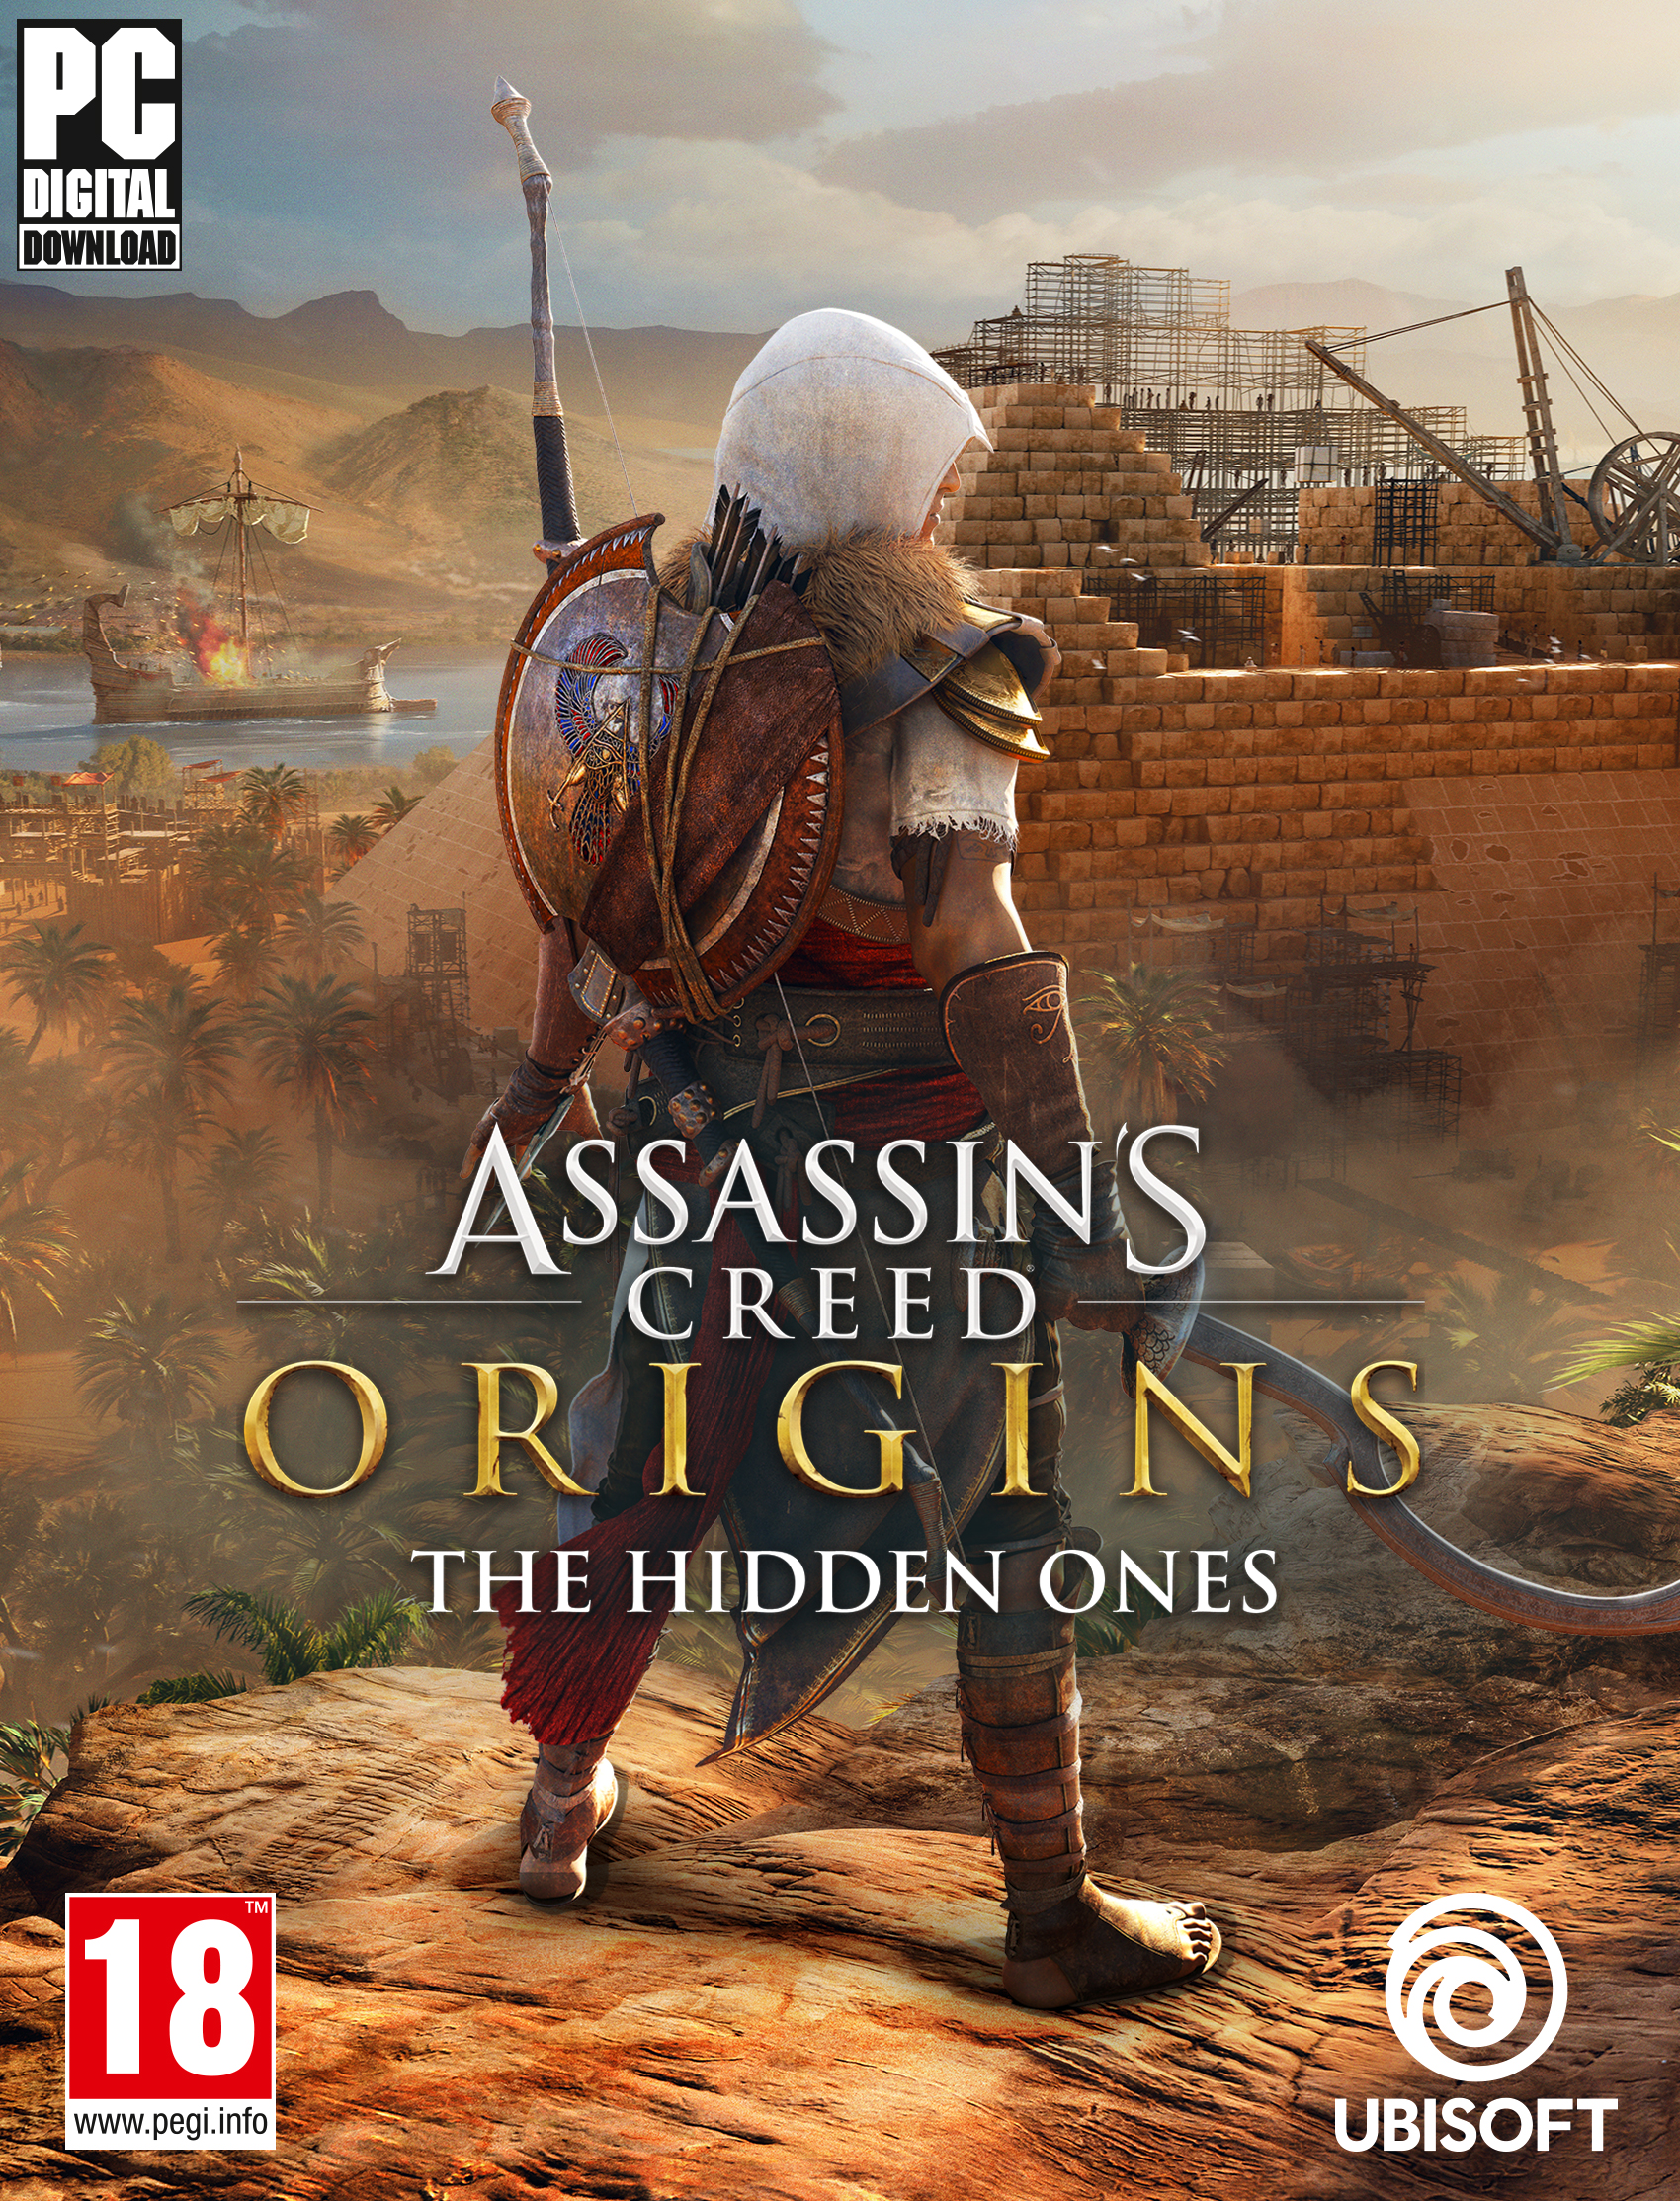 download assassins creed origins for pc